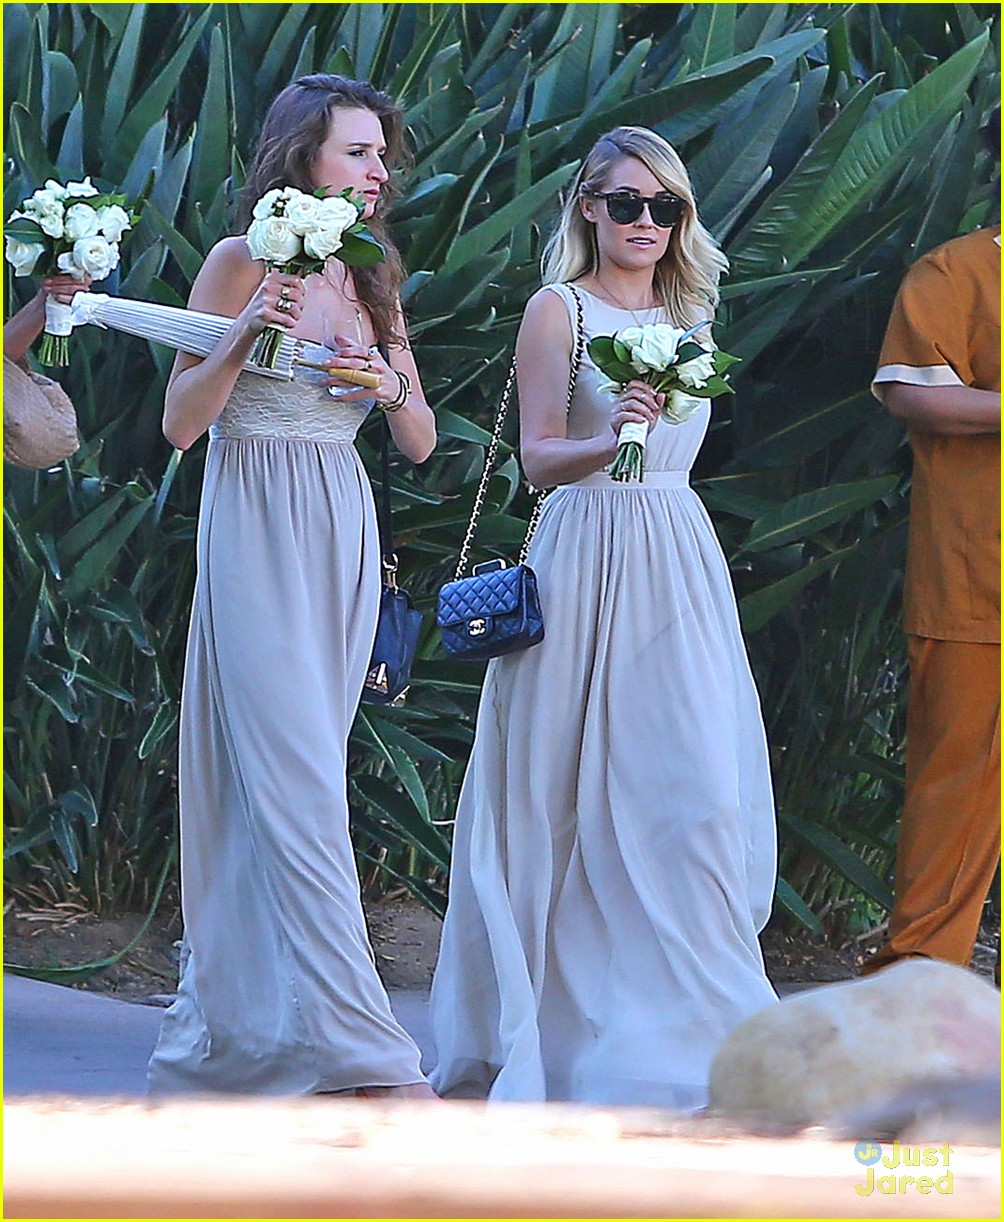 Lauren Conrad Gets Some Wedding Practice As A Bridesmaid At A Friend S Wedding Photo 707783 Lauren Conrad Lo Bosworth Pictures Just Jared Jr